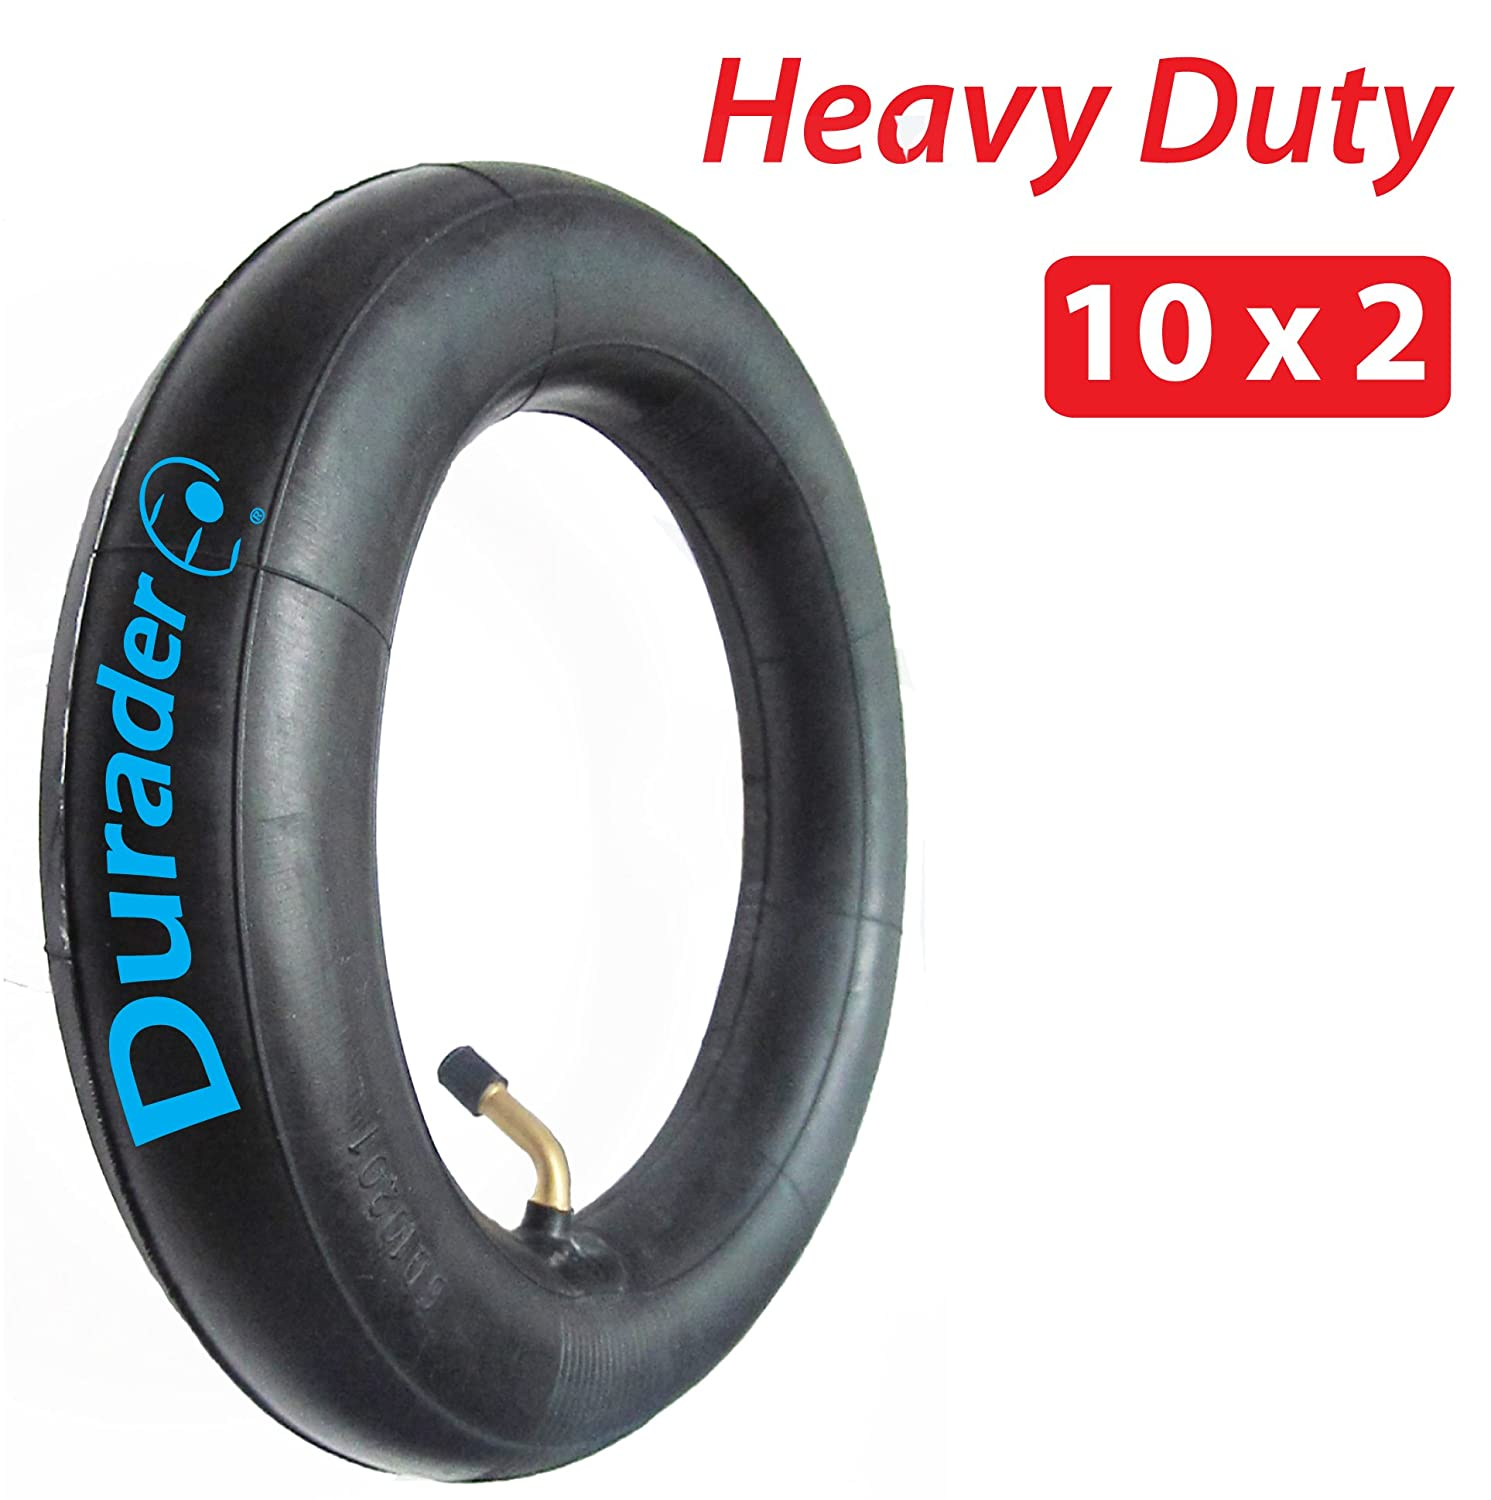 10 x 2 Inner Tube with Angled Valve for Gas/Electric scooters & bikes Lineament